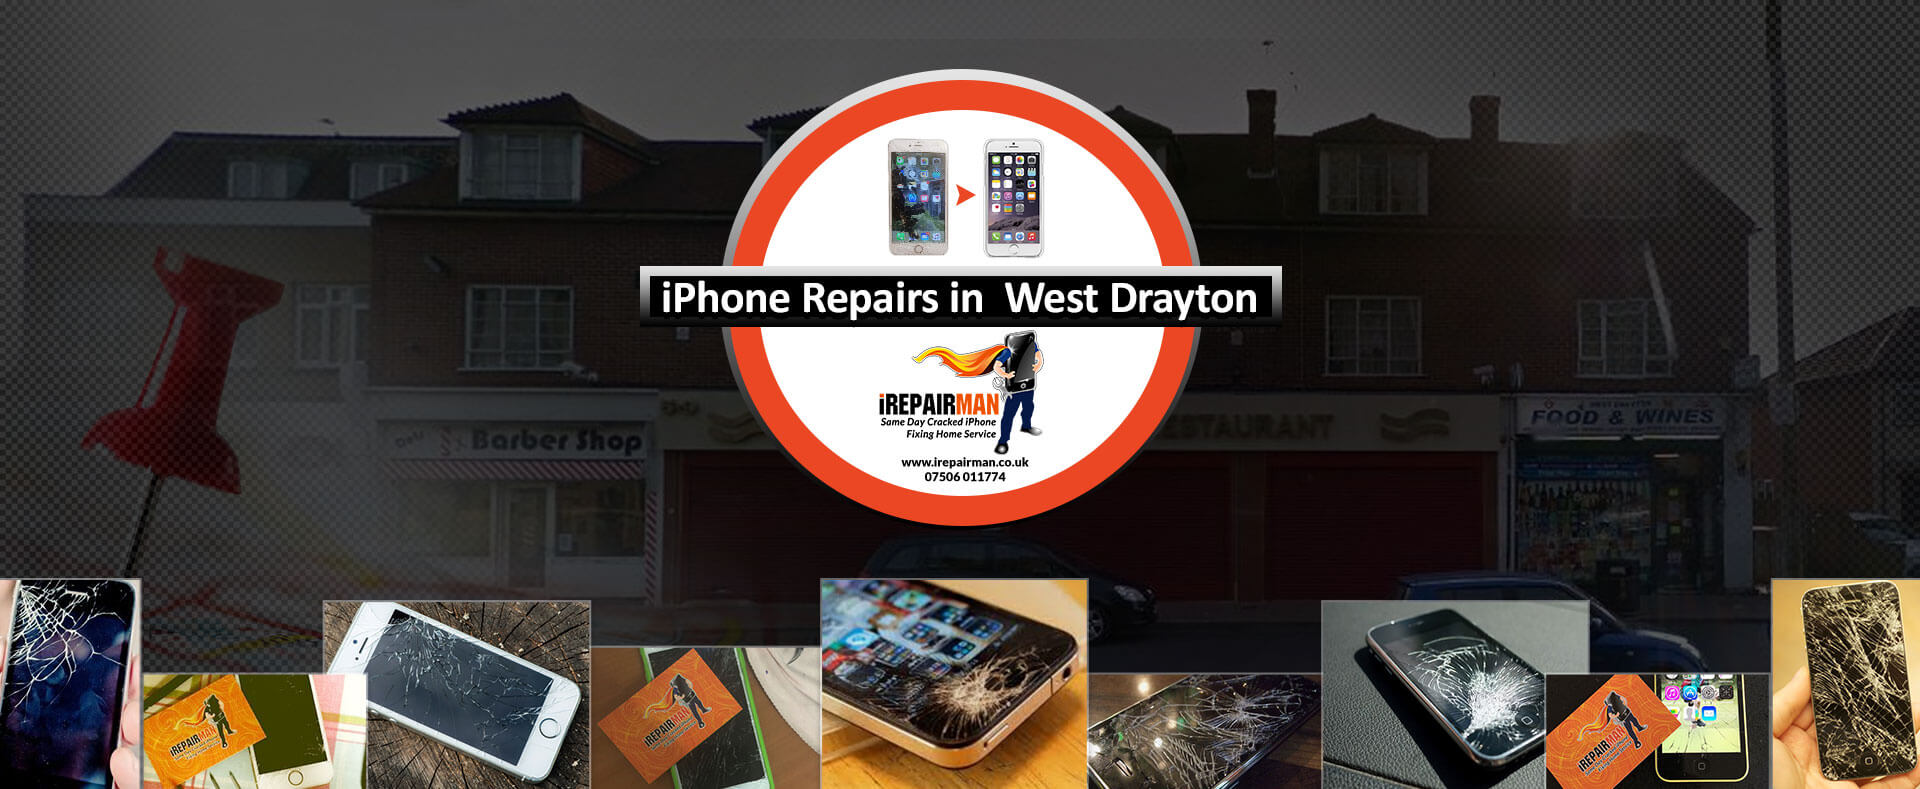 iPhone Repairs in West Drayton